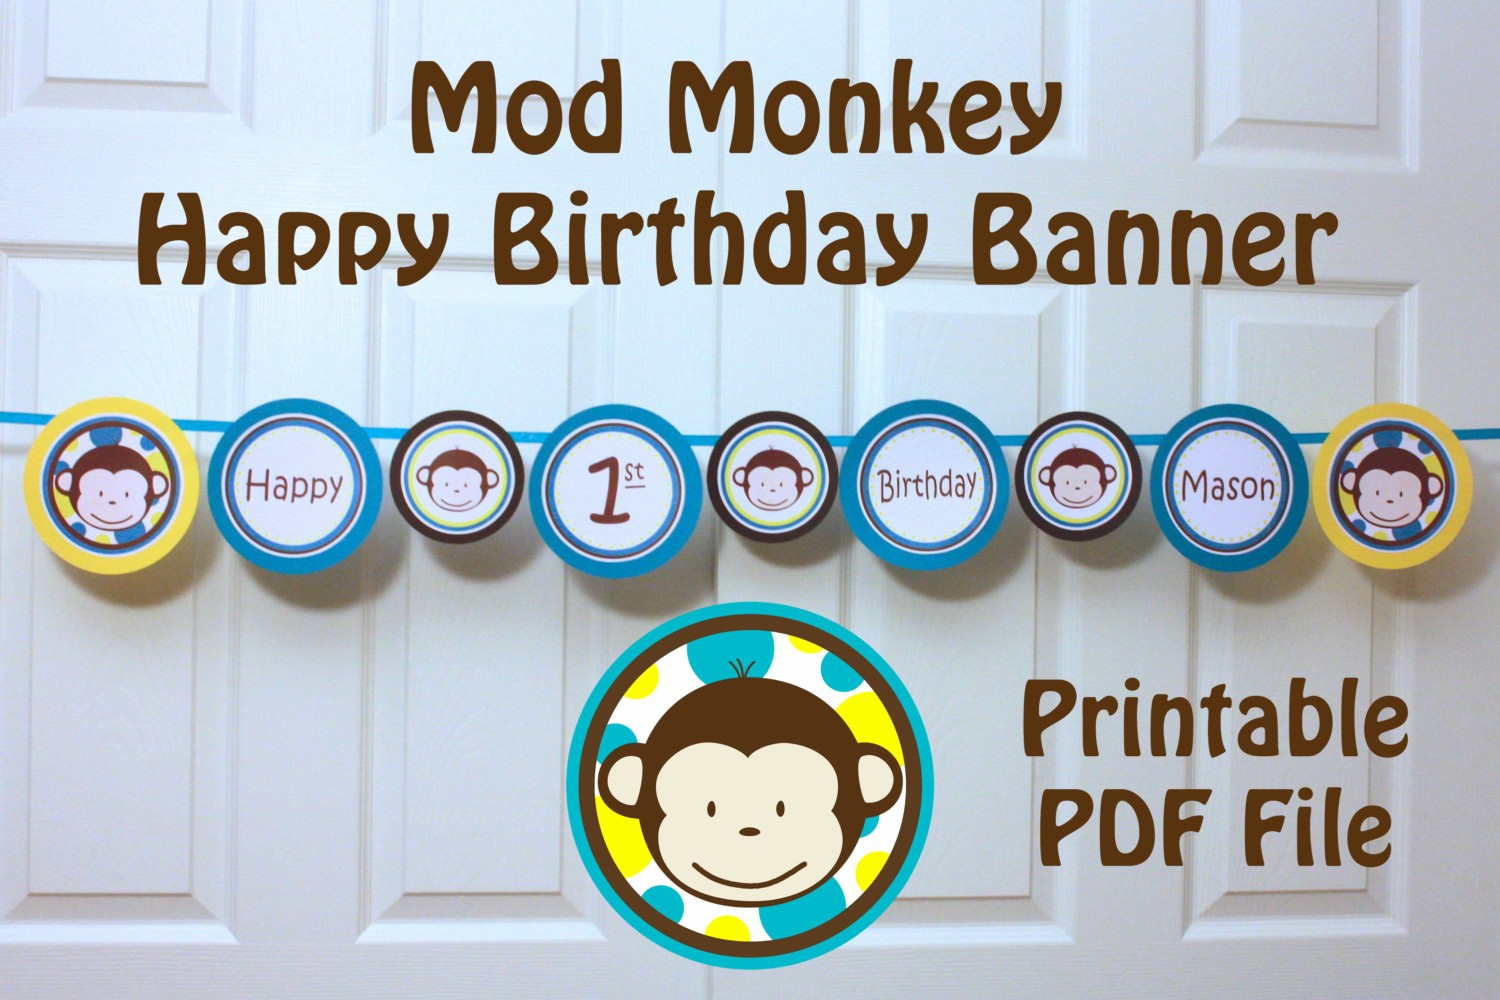 Happy Birthday Banner with Name Unique Mod Monkey Banner Happy 1st Birthday Banner with Name